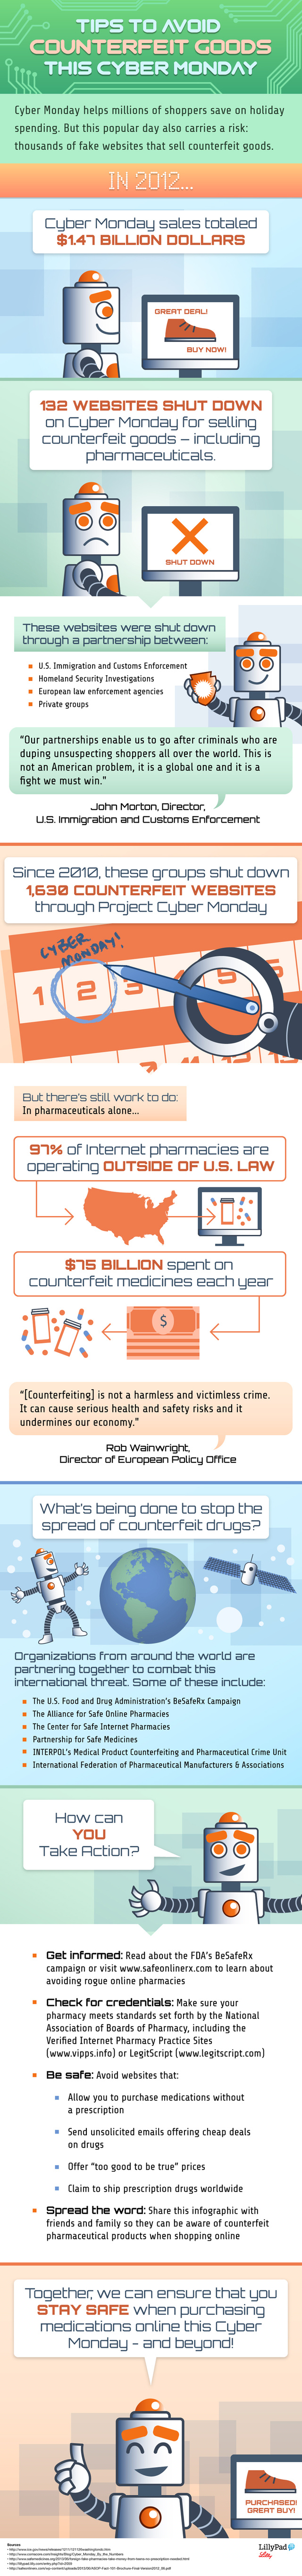 Don't Buy Knockoff Prescription Drugs on Cyber Monday